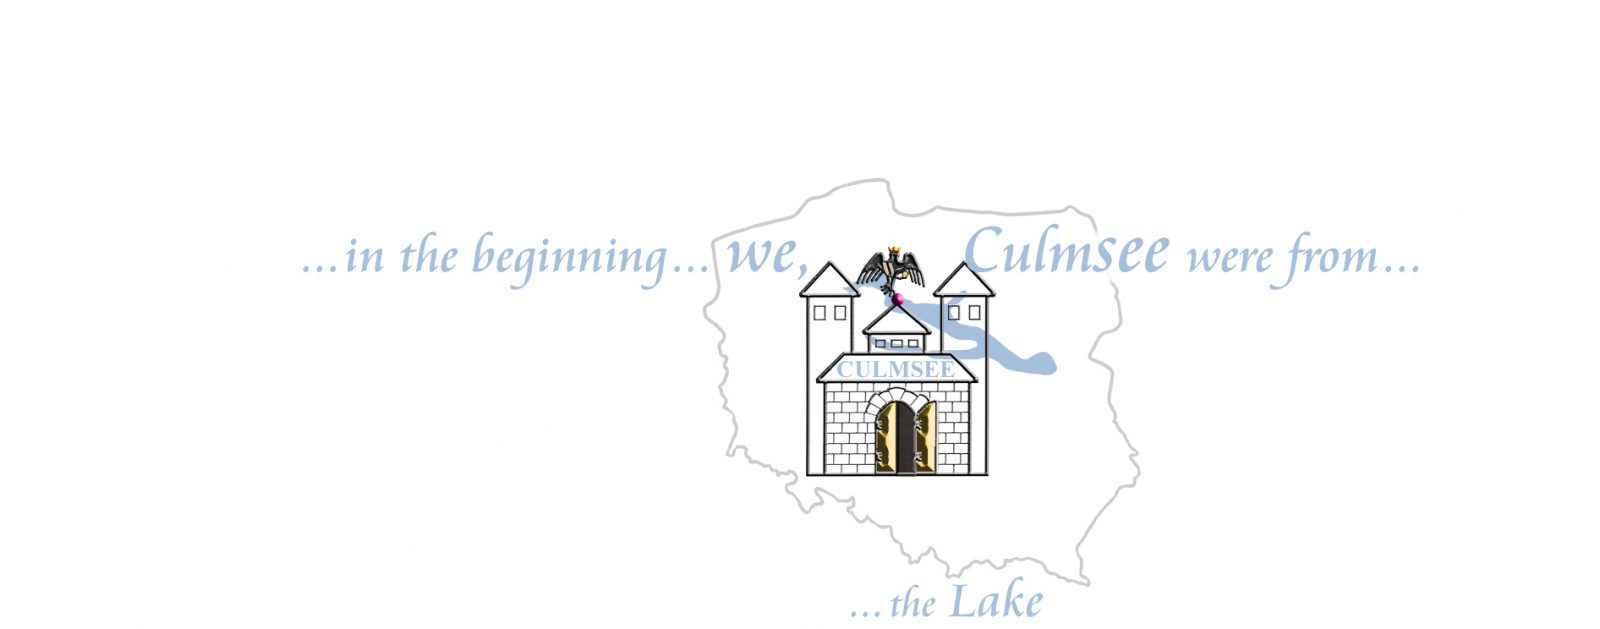 in the beginning we Culmsees were from LAKE CulmSEE